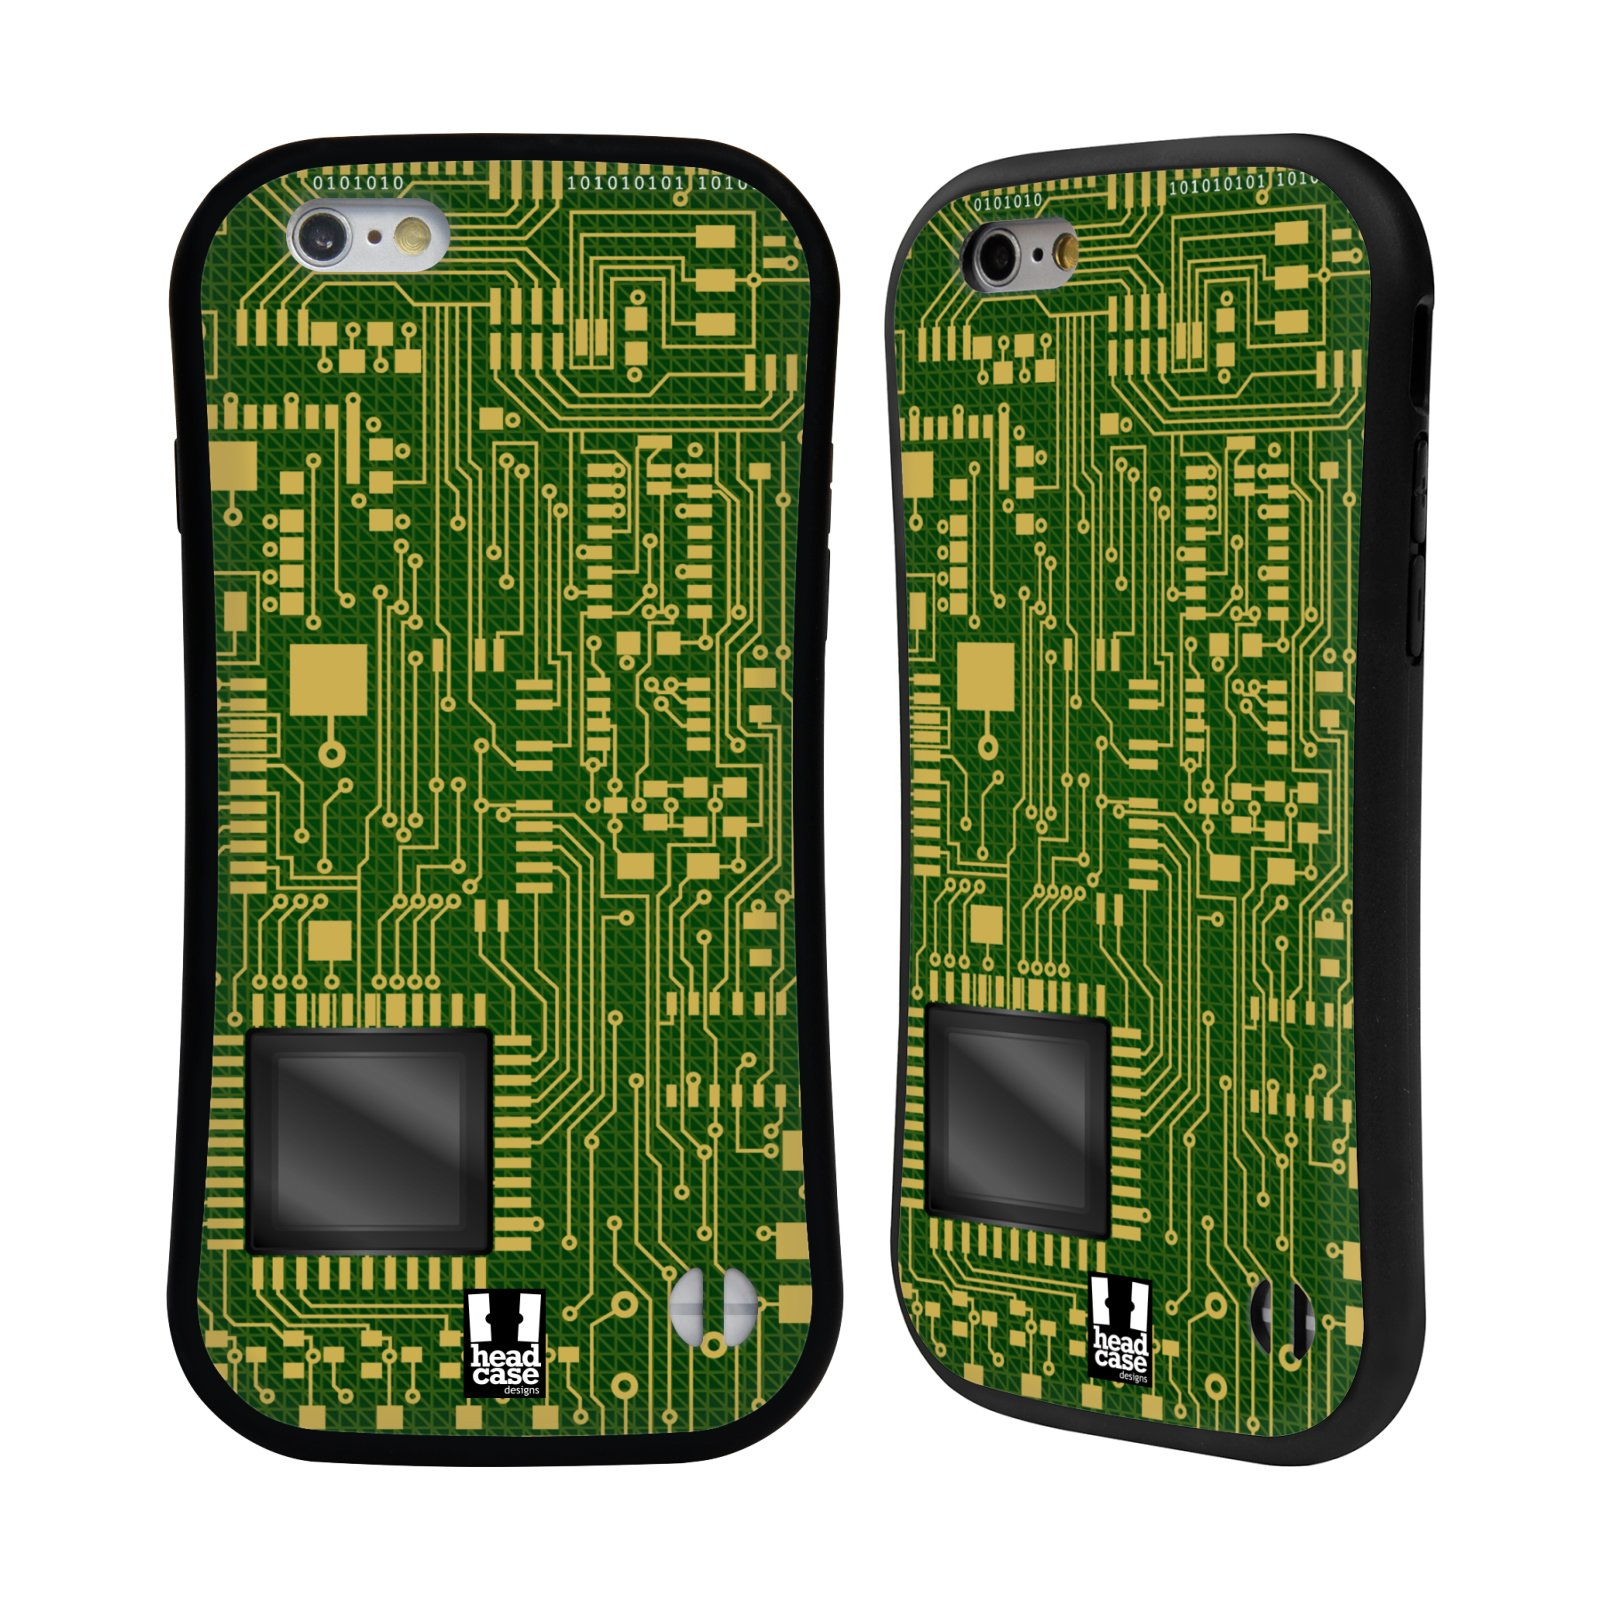 The Circuit Board Business Card Holder Is Available For 799 Plus